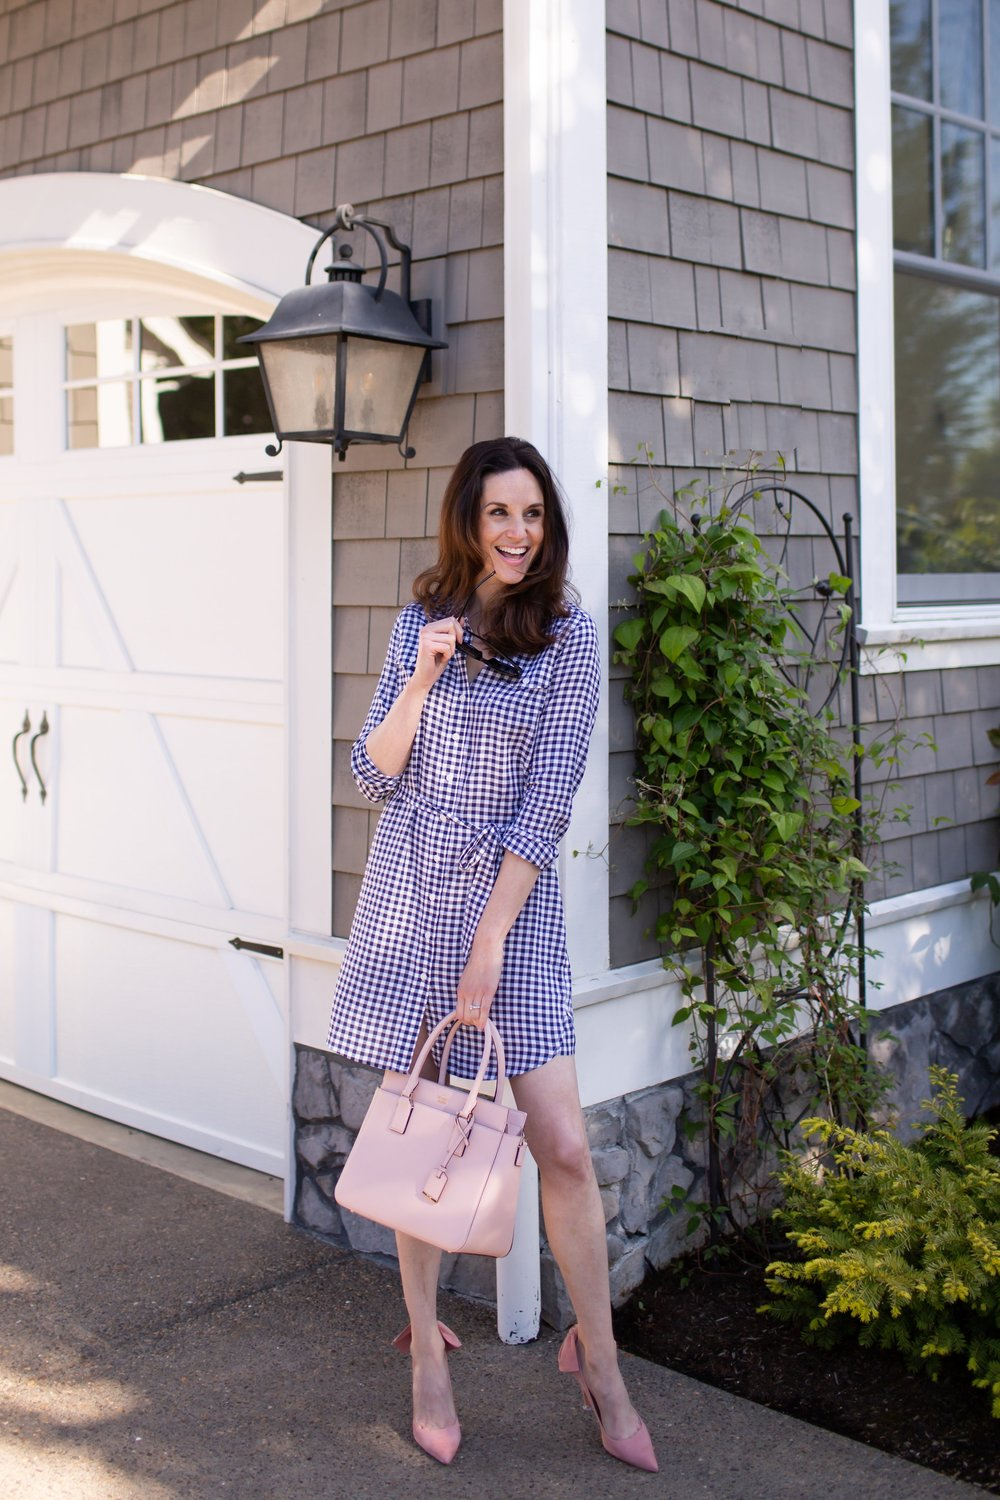 Gianna character wearing a Draper James shirtdress, Kate Spade purse and Schutz shoes.jpg